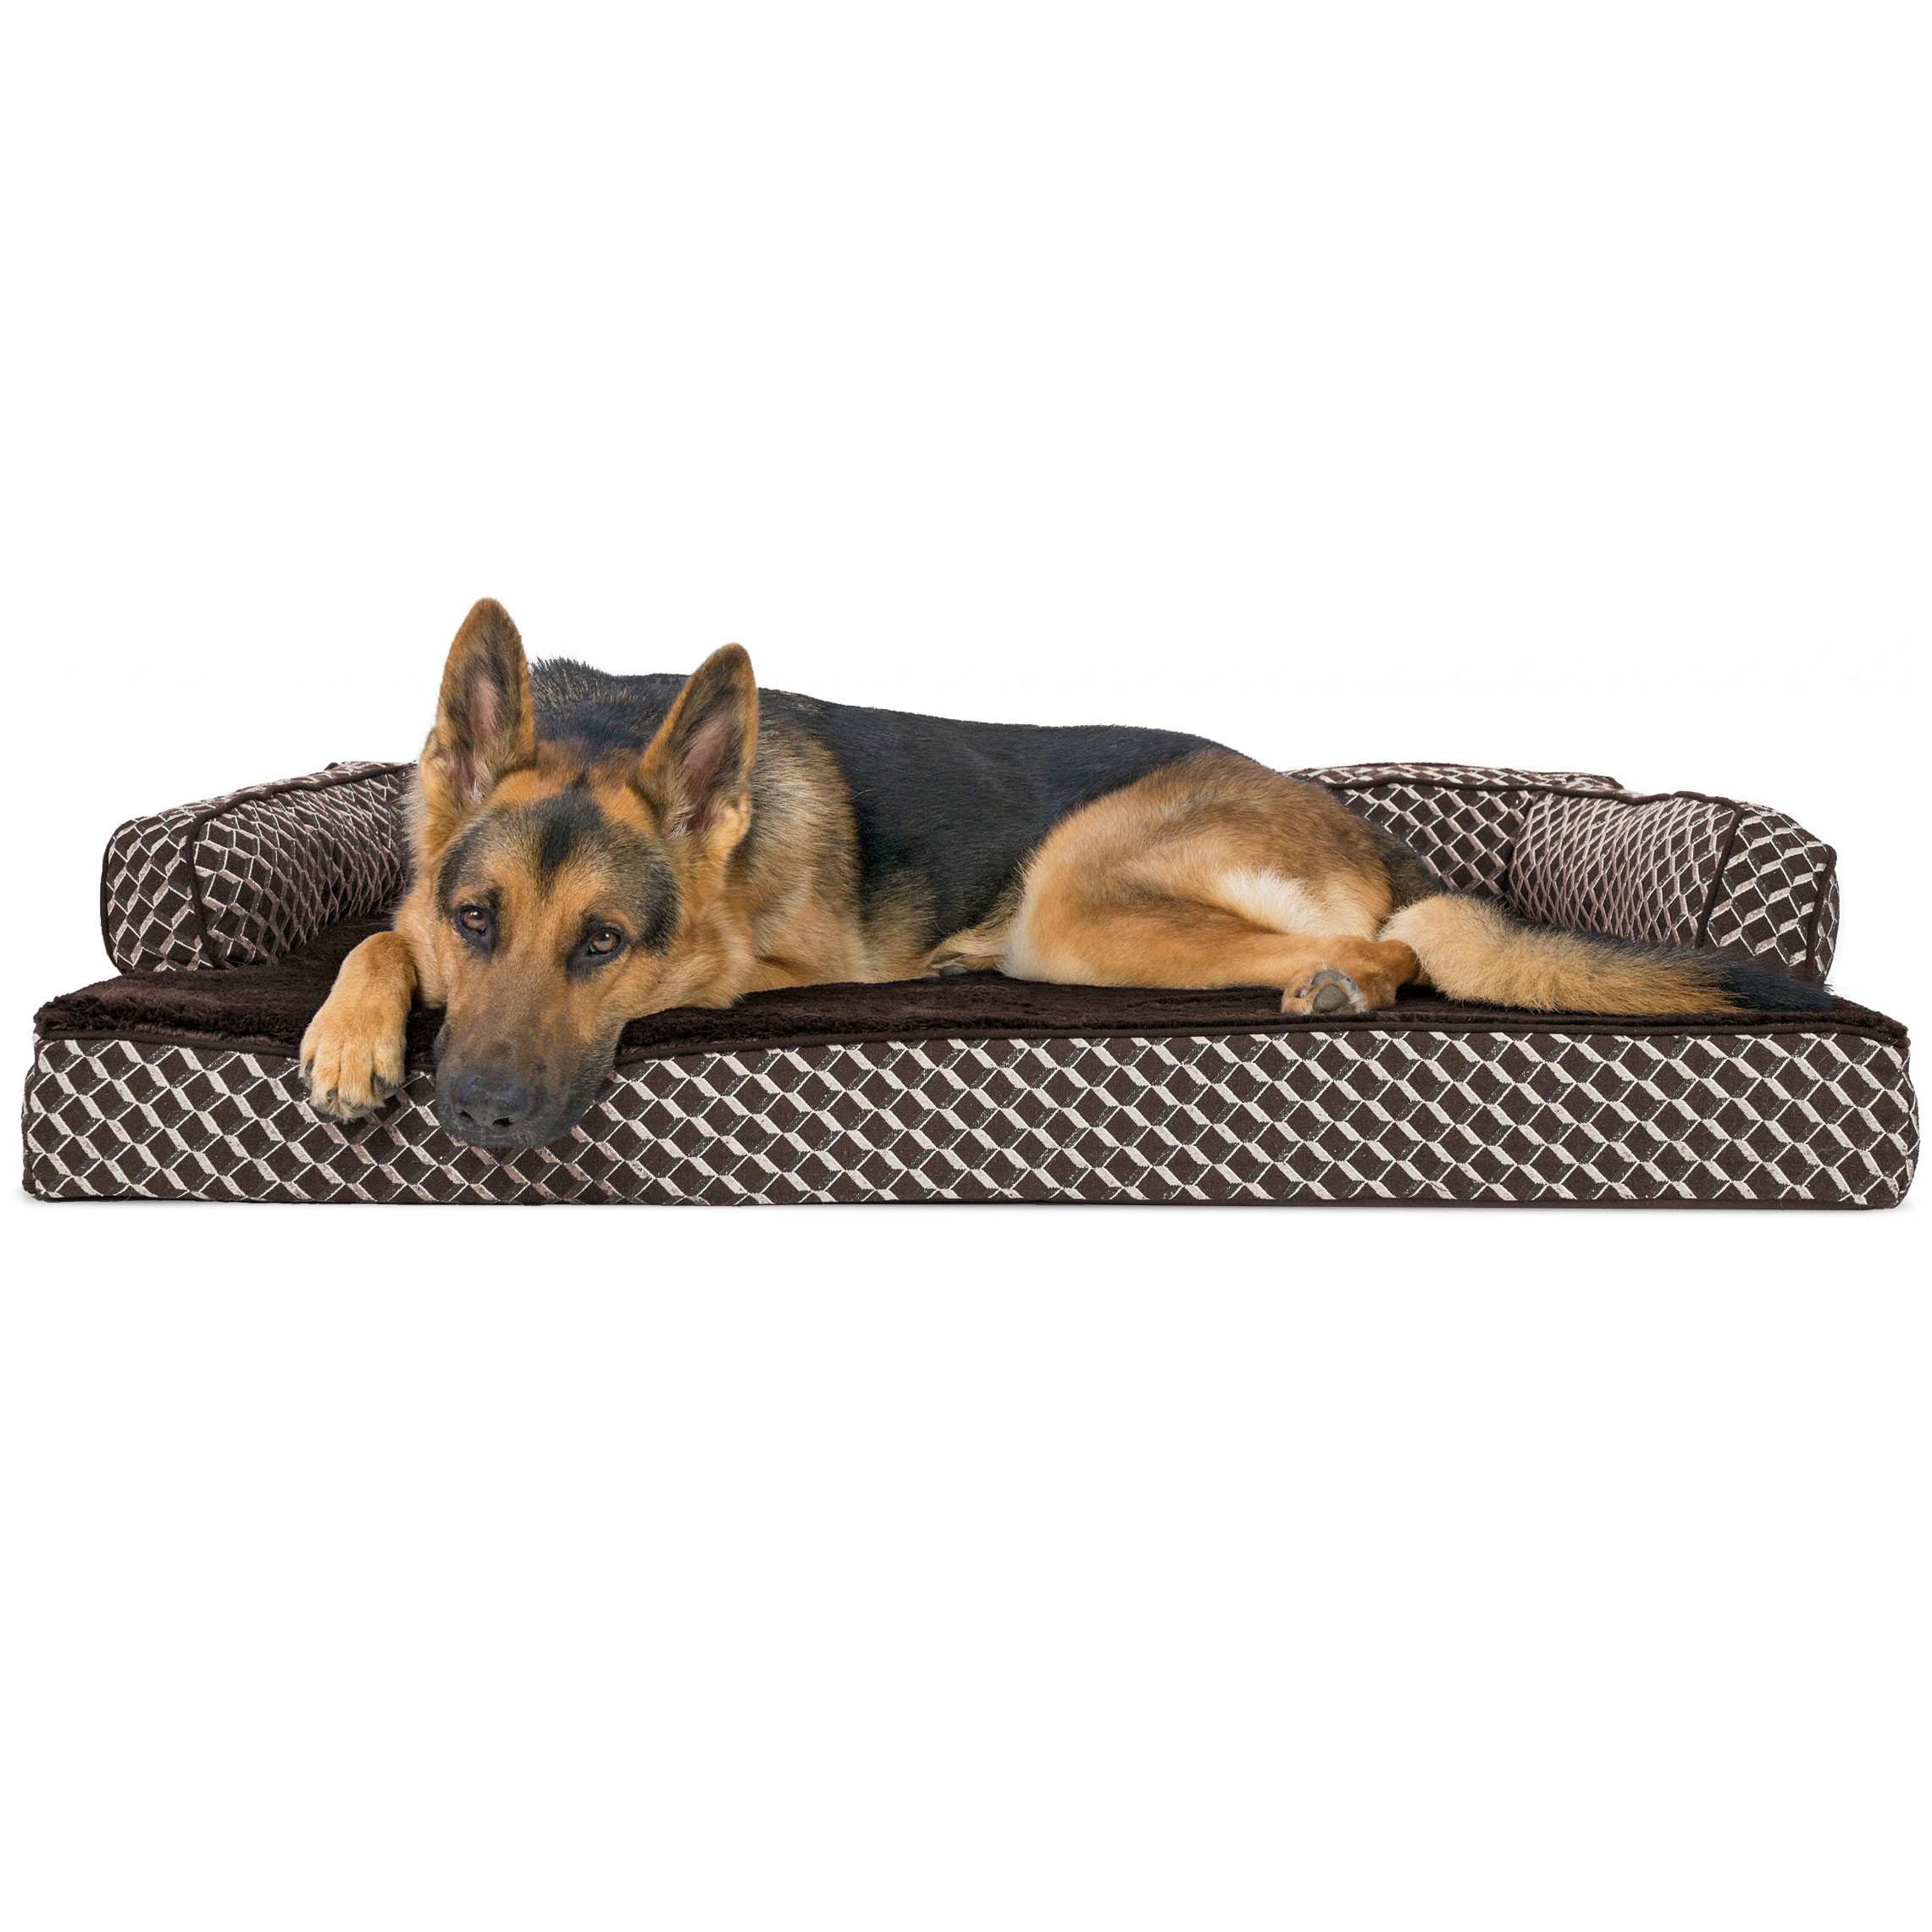 FurHaven Plush & Décor Comfy Couch Orthopedic Sofa-Style Pet Bed Dog Bed